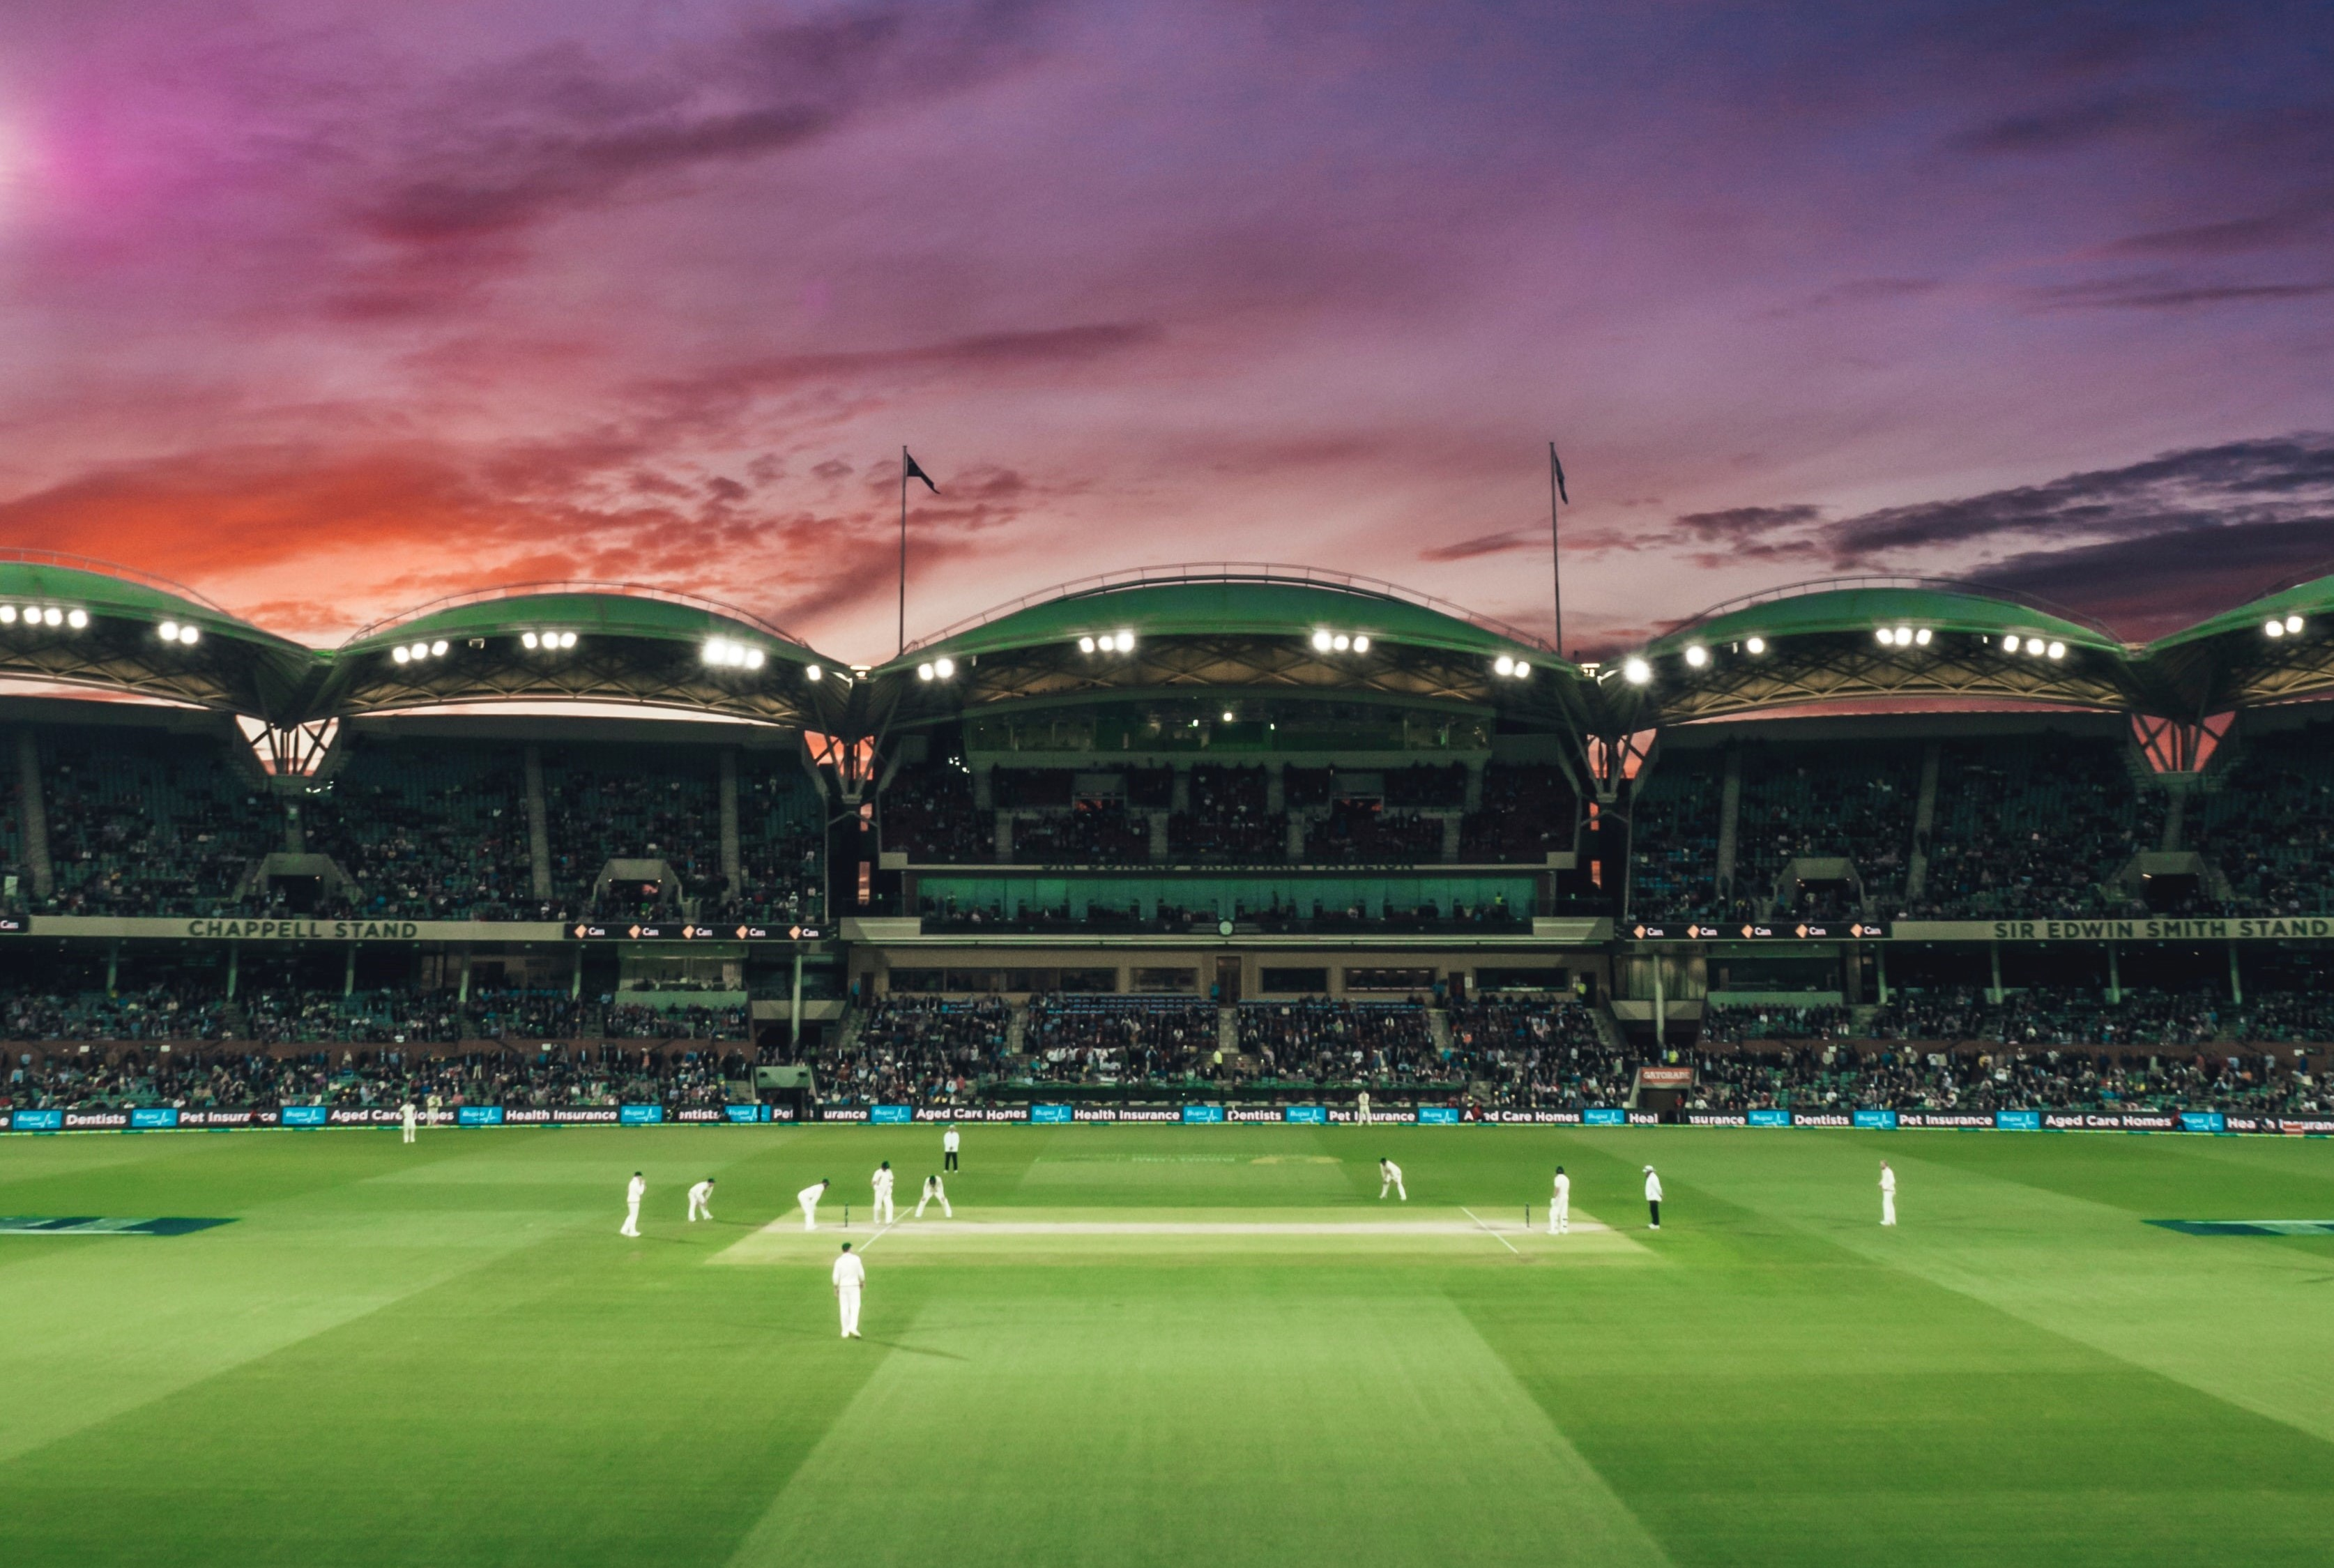 The Australian Cricket Team V Sunderland AFC - The Culture Clash!